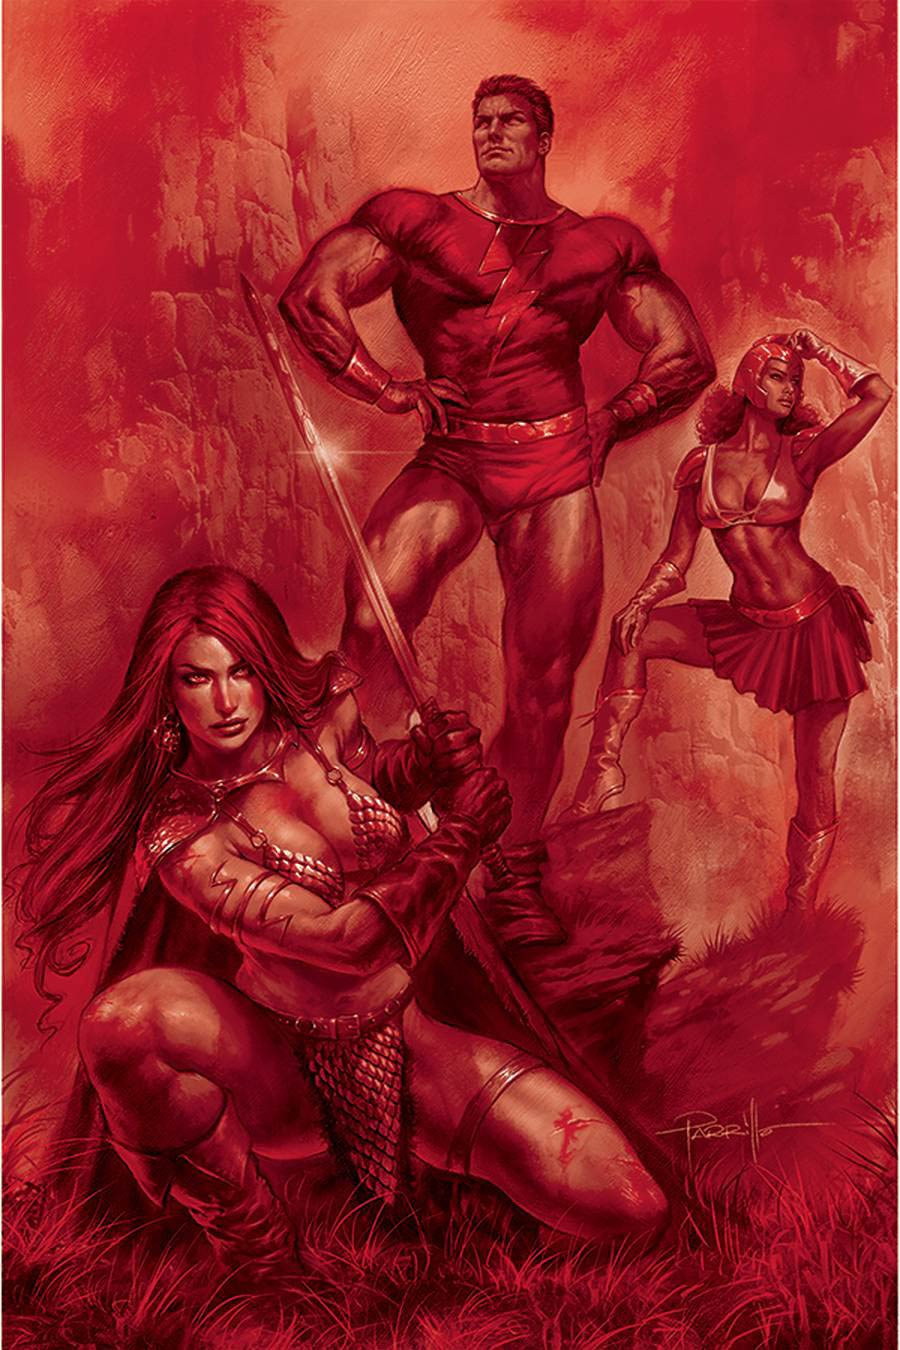 Red Sonja The Superpowers #1 Cover Z-C Ultra-Premium Limited Edition Lucio Parrillo Crimson Red Line Art Virgin Cover